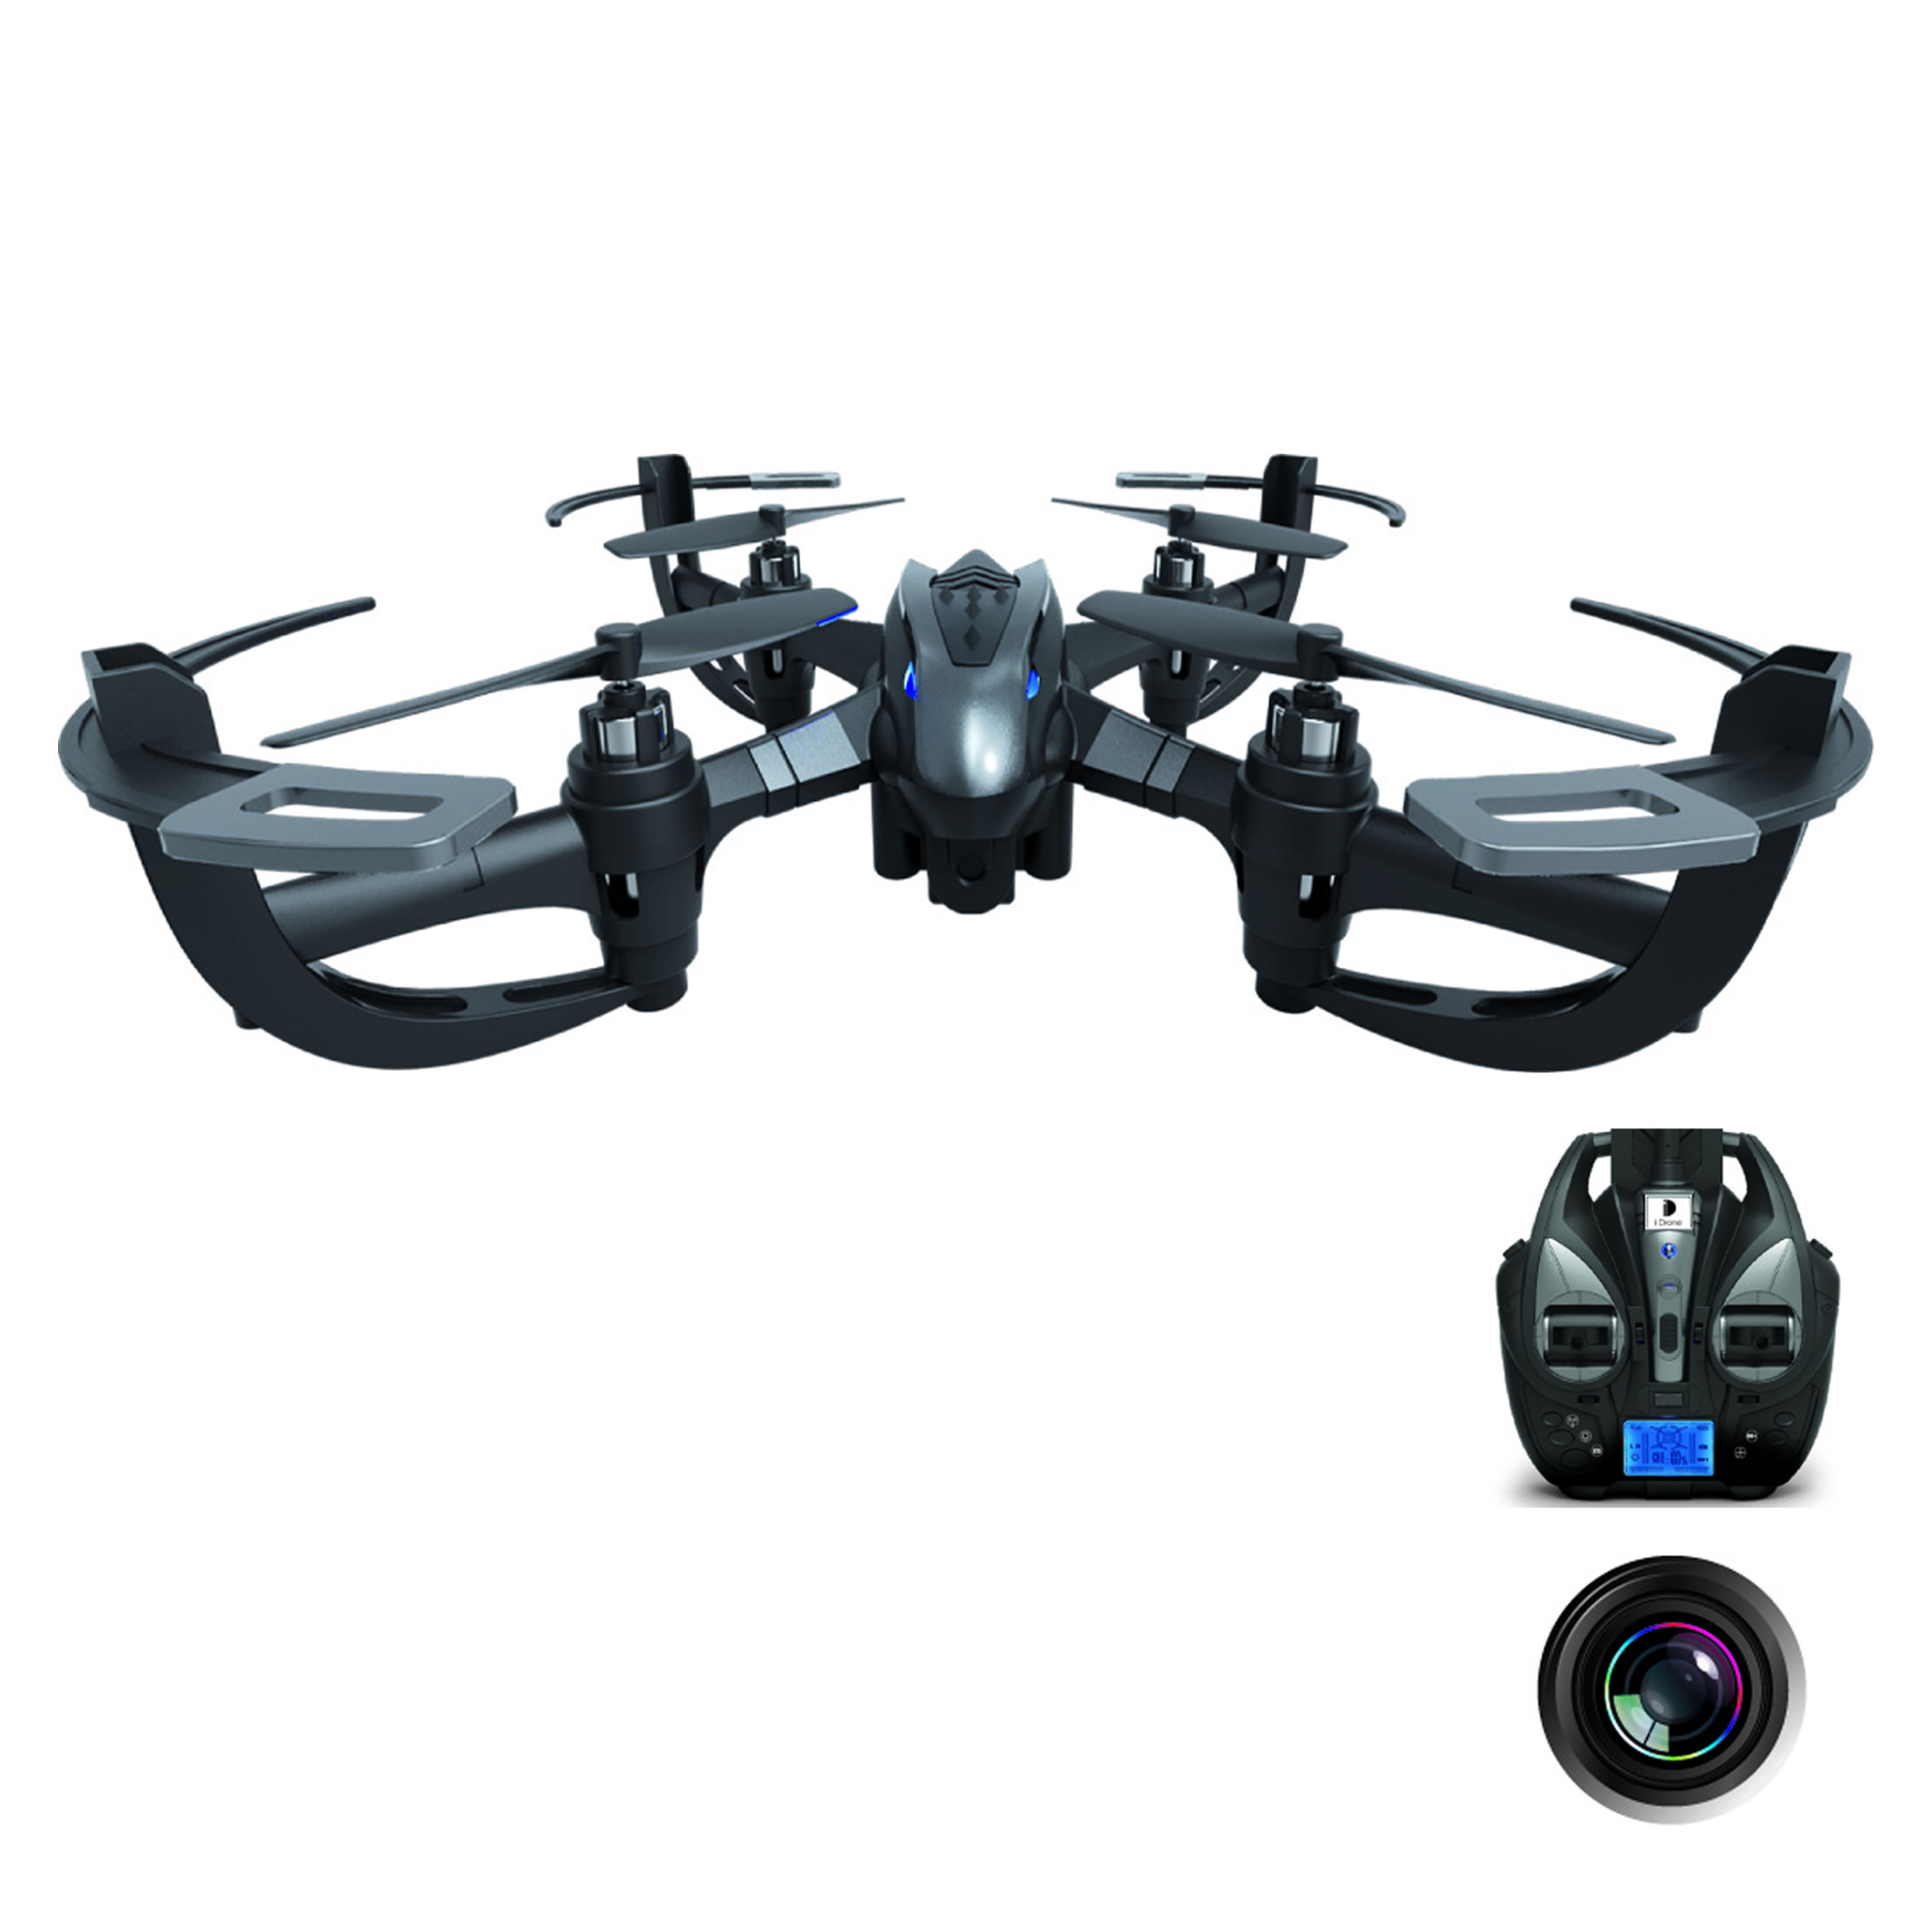 Force Flyers - 6 Inch Action Drone with Camera and One Key Return